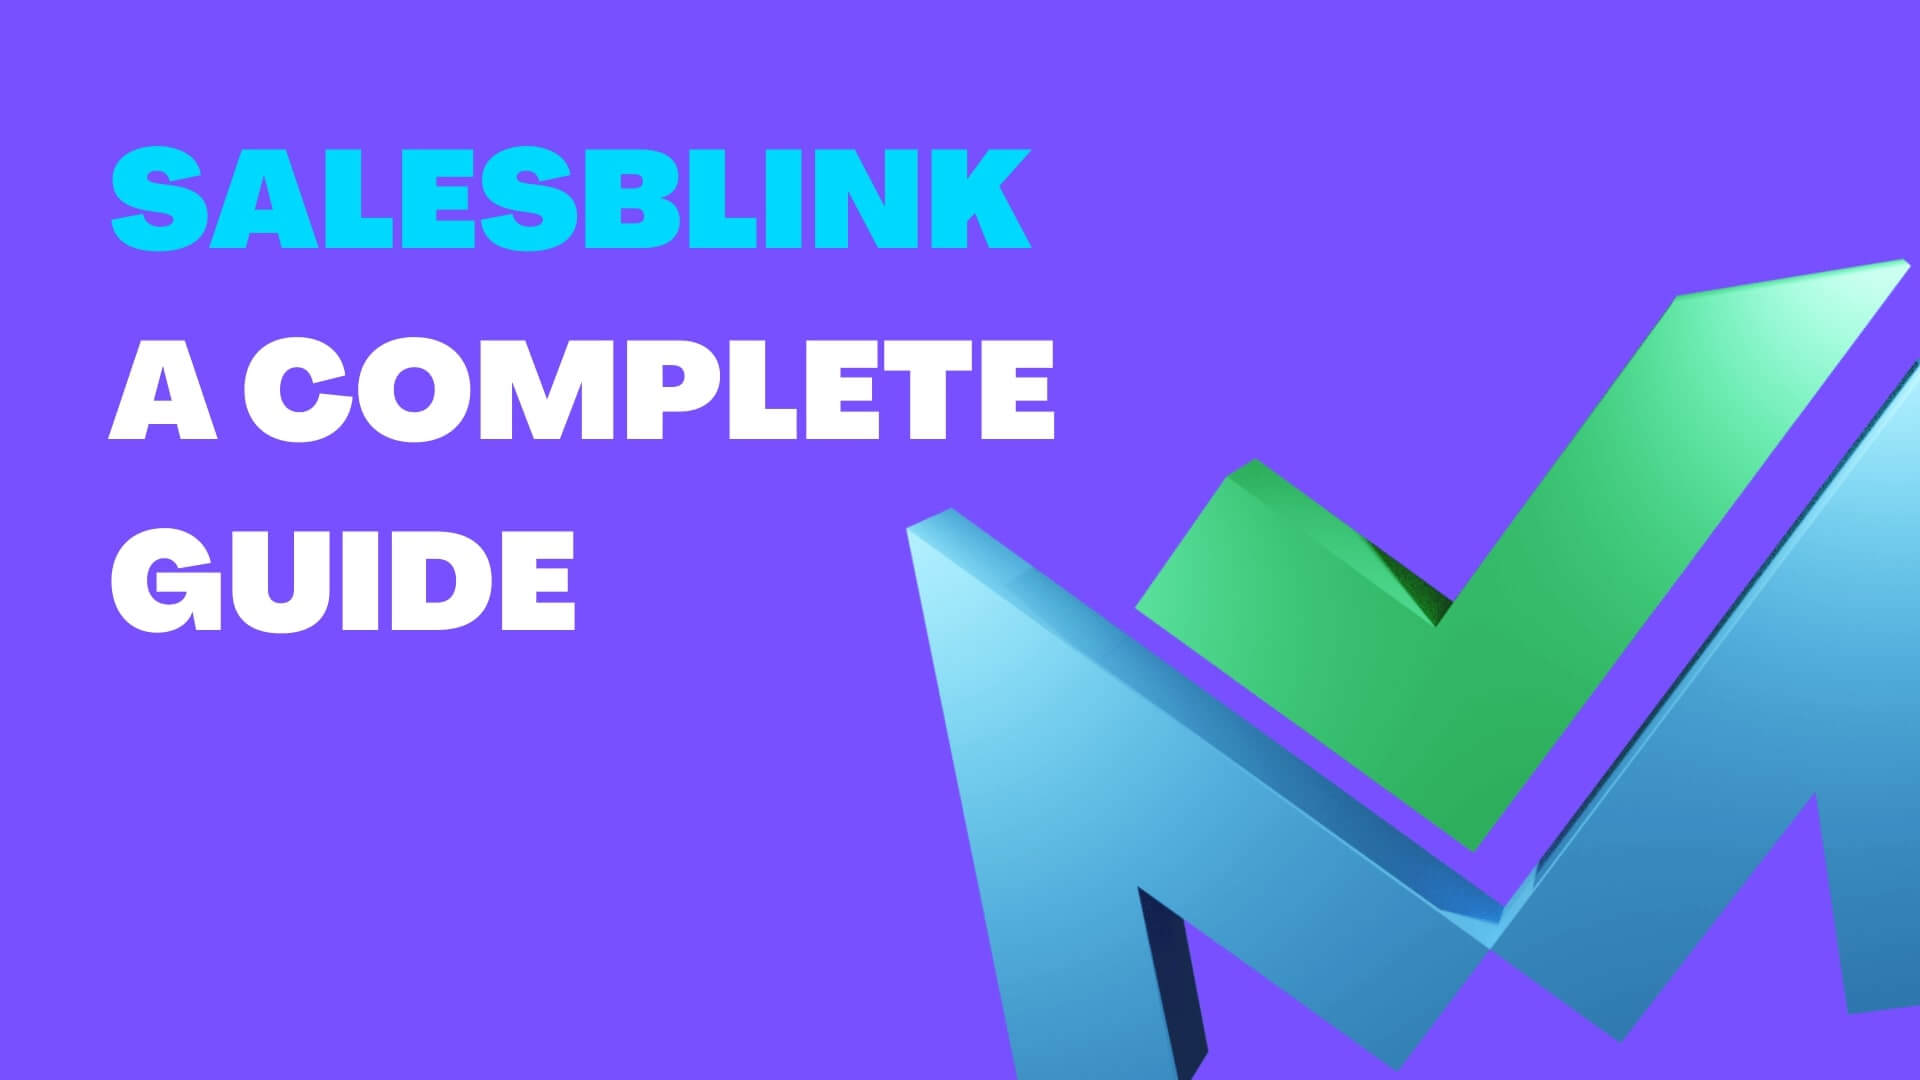 SalesBlink: A Complete Guide to Automated Cold Outreach